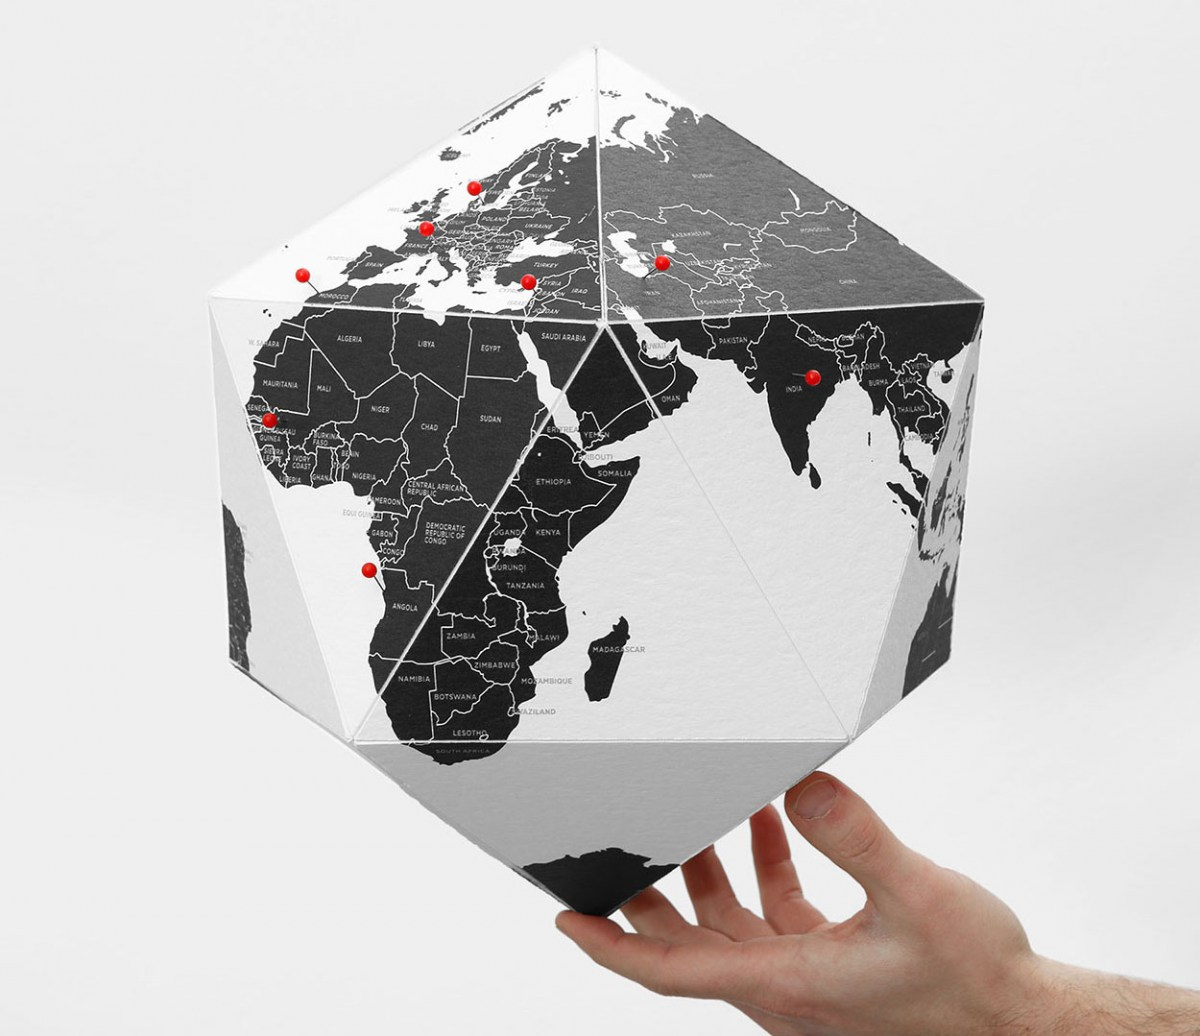 Here Personal Globe by Palomar